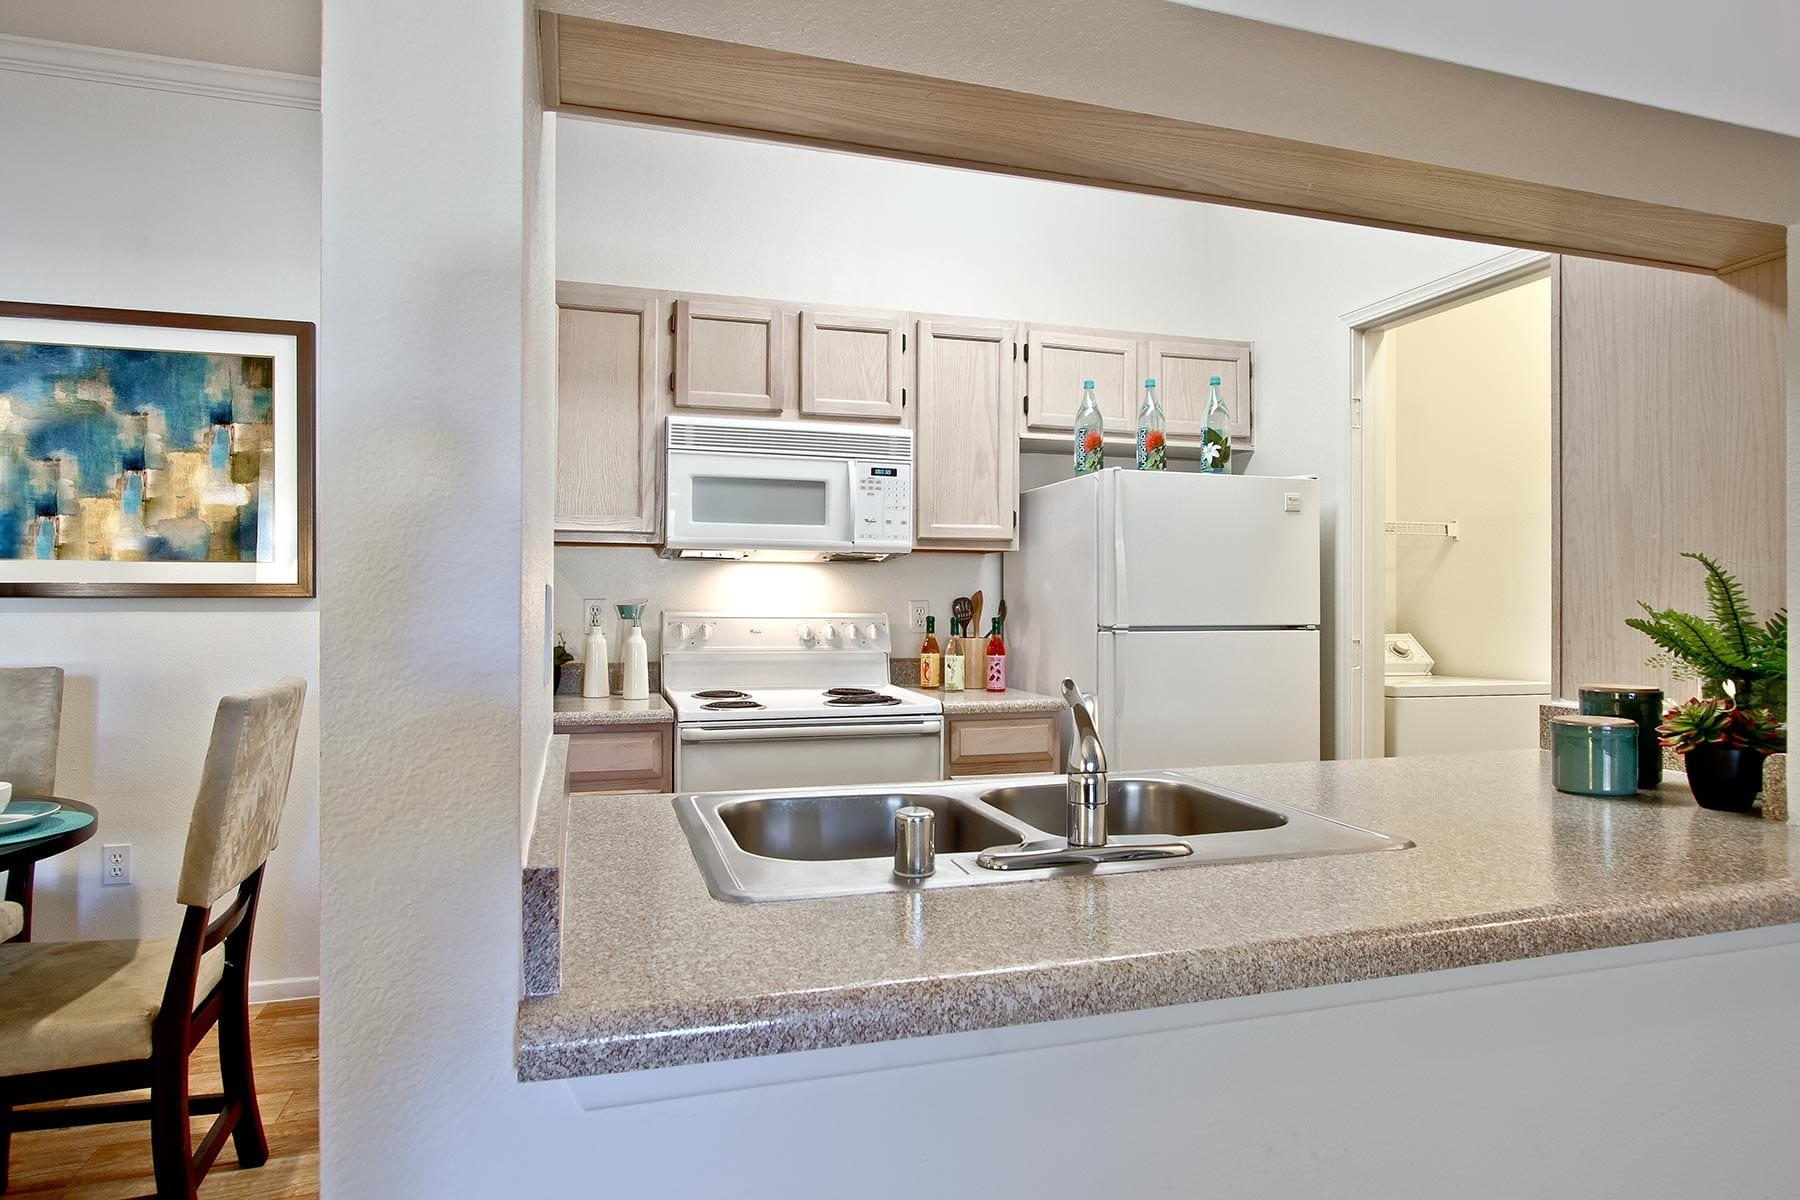 A kitchen with matching appliances, smooth countertops and a stainless steel sink.